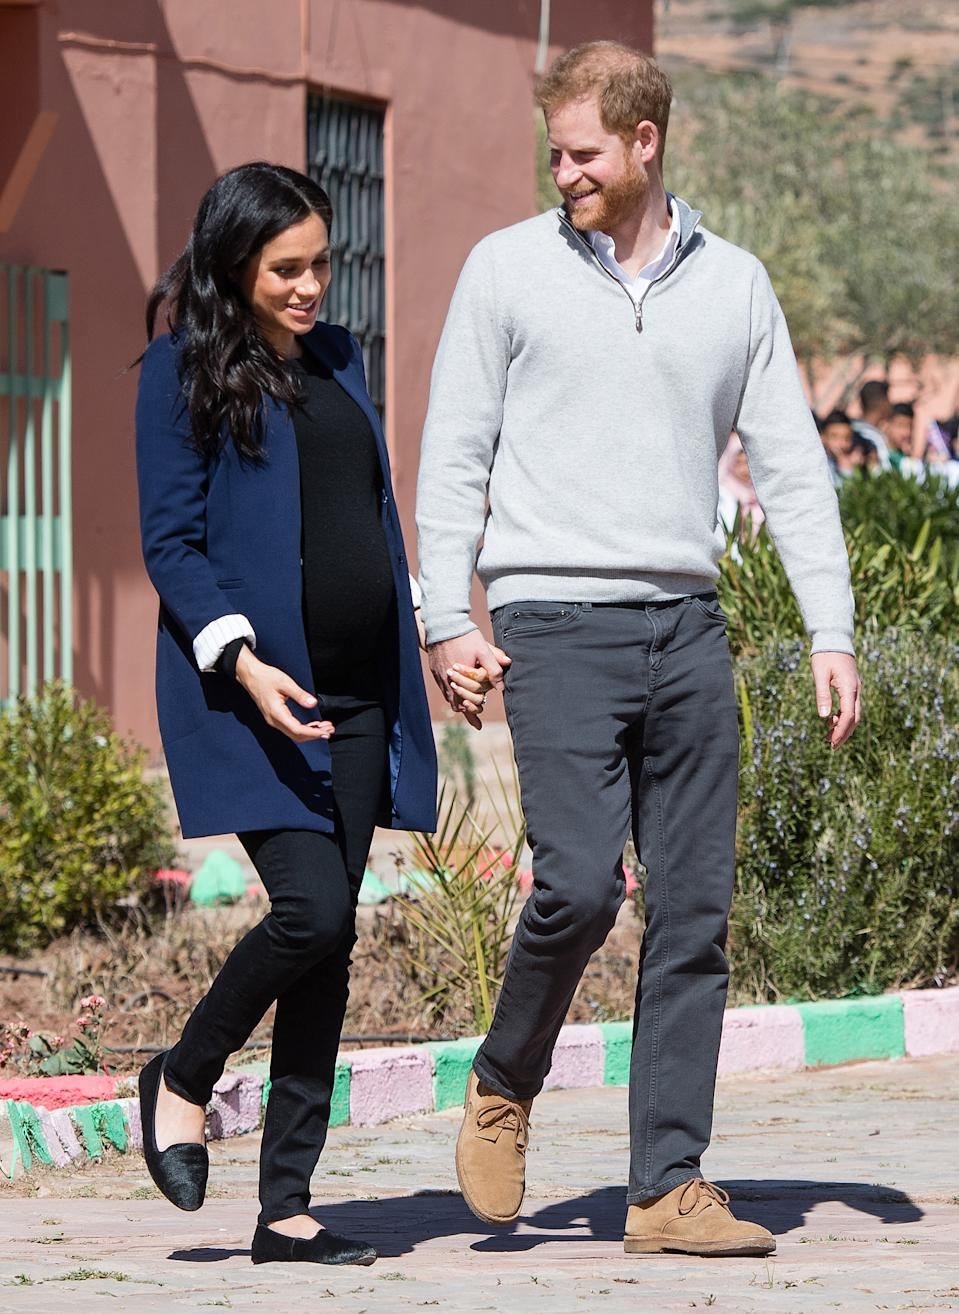 Meghan Markle wearing the Starling Loafer by Birdies during a visit to Morocco in 2019.